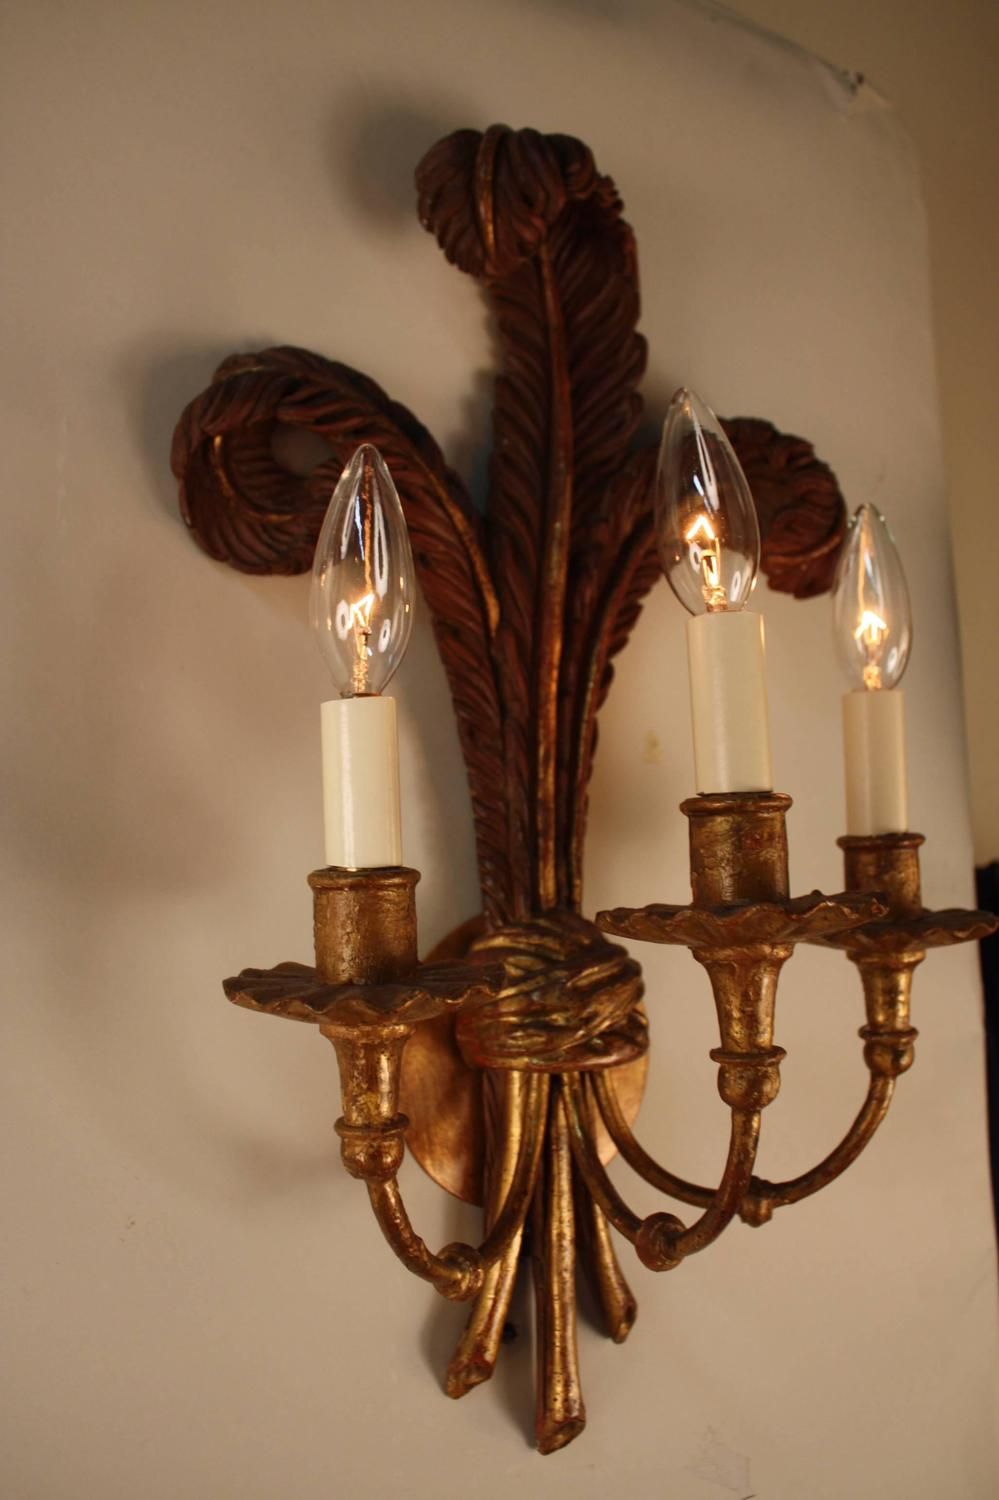 Pair of Italian Giltwood Wall Sconces For Sale at 1stdibs